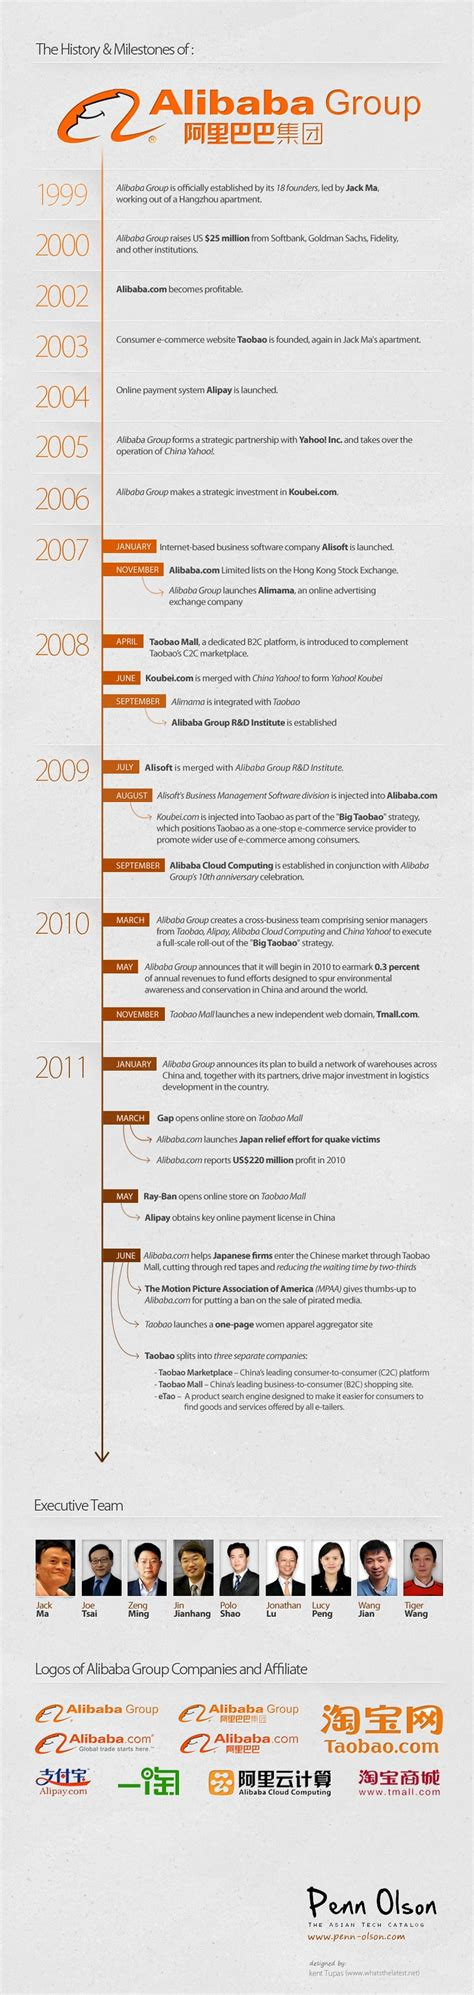 alibaba history the history timeline of the alibaba group infographic